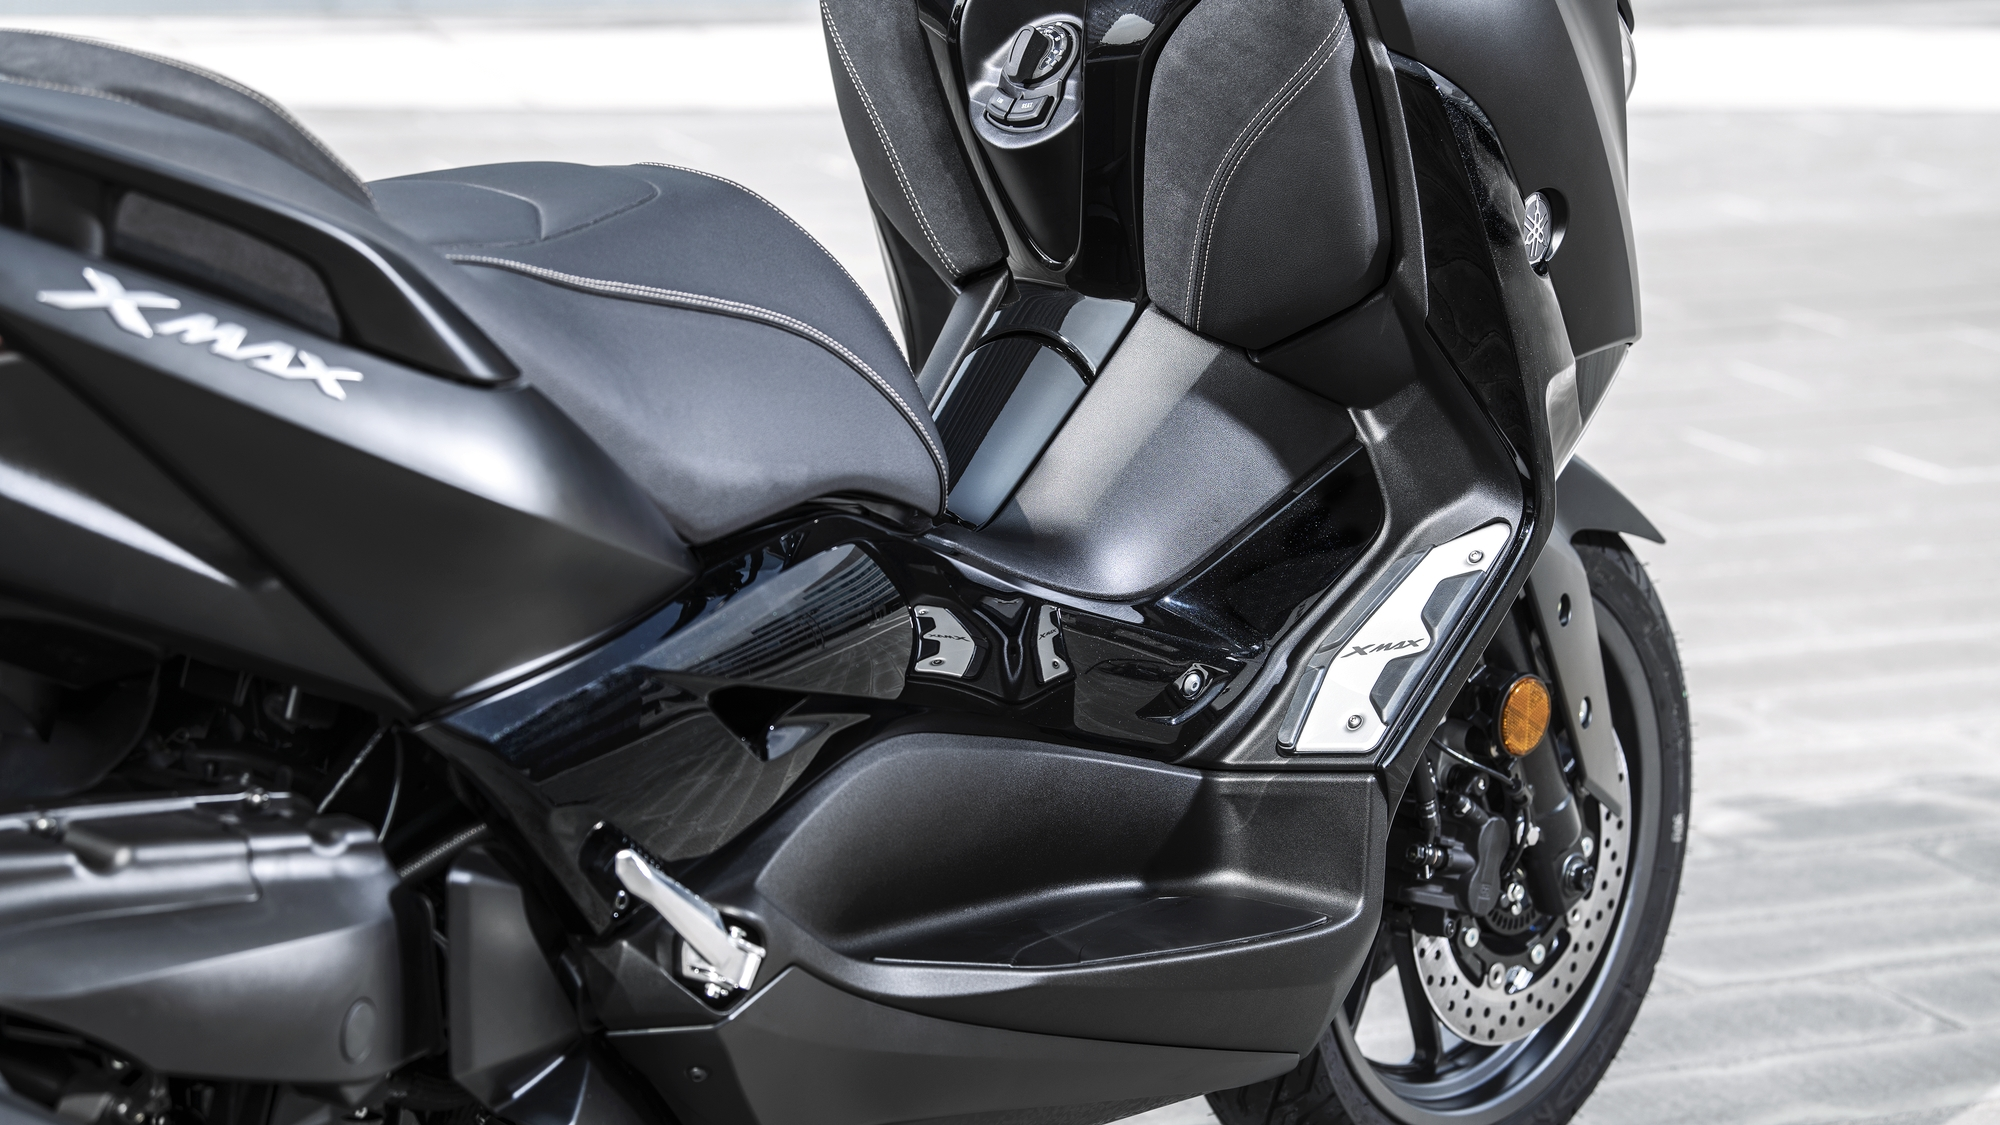 Yamaha XMAX 300 IRON MAX - Features and Technical Specifications